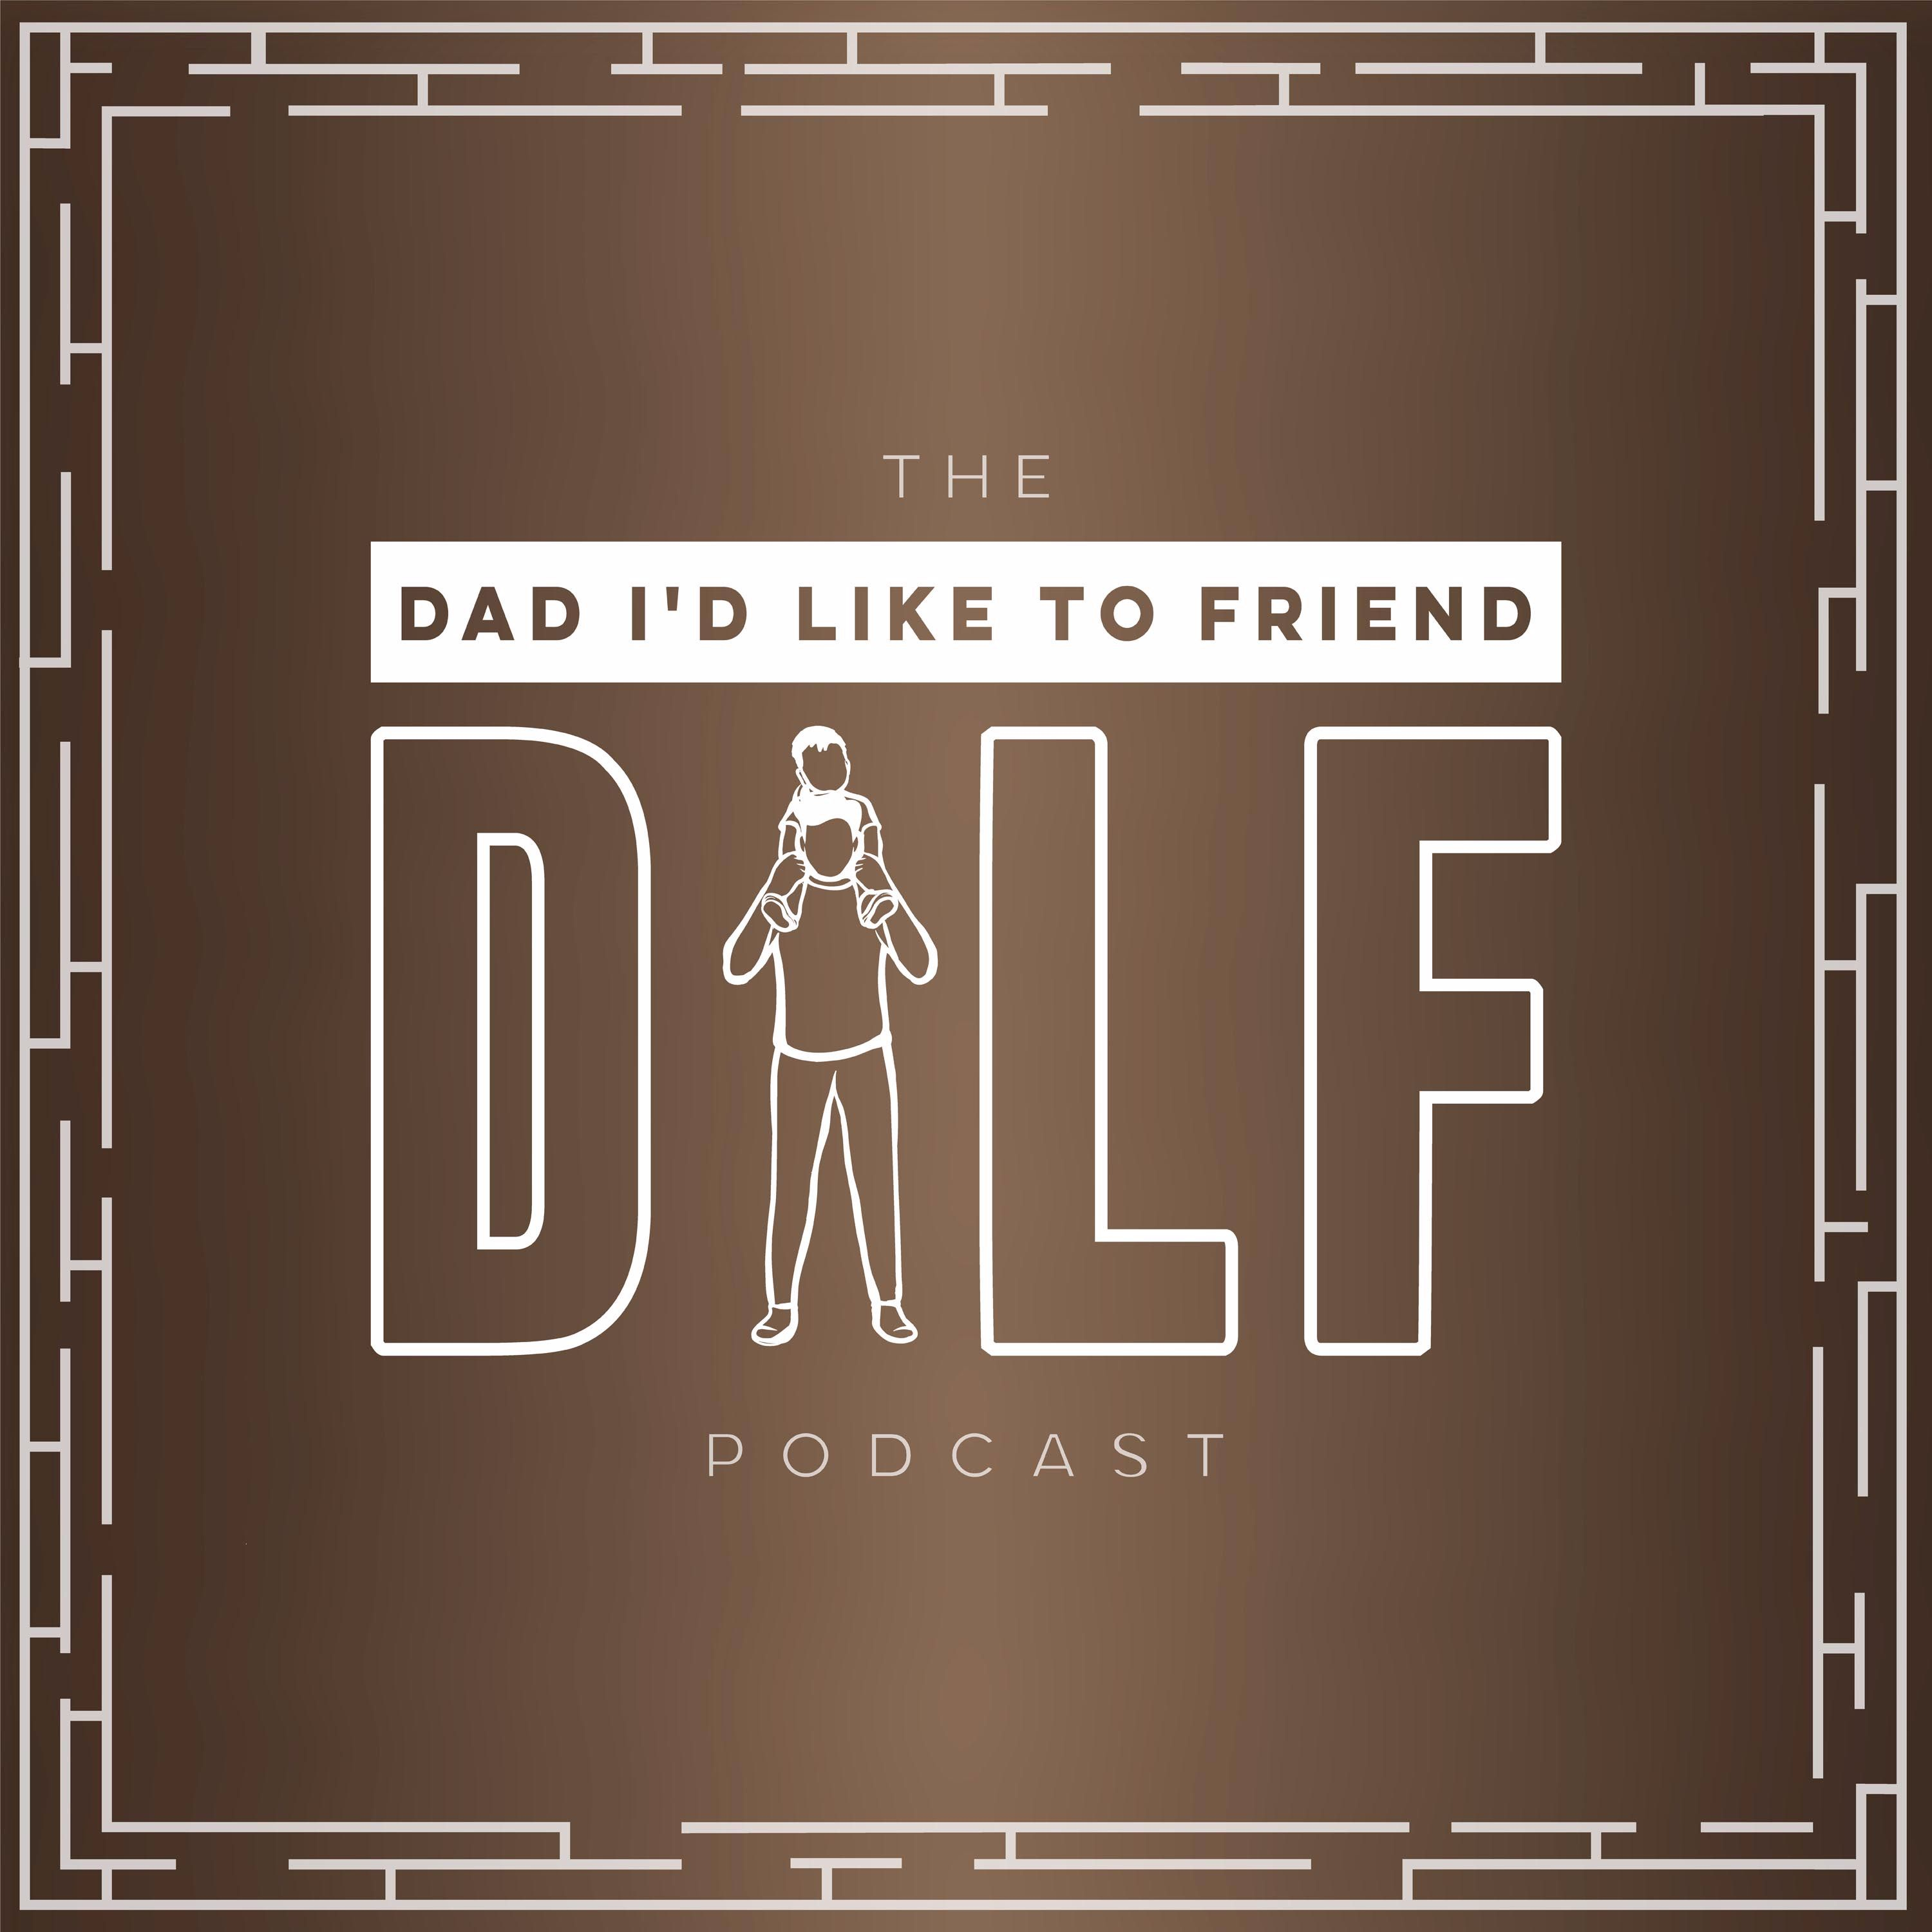 Dad I'd Like To Friend (The DILF Podcast)